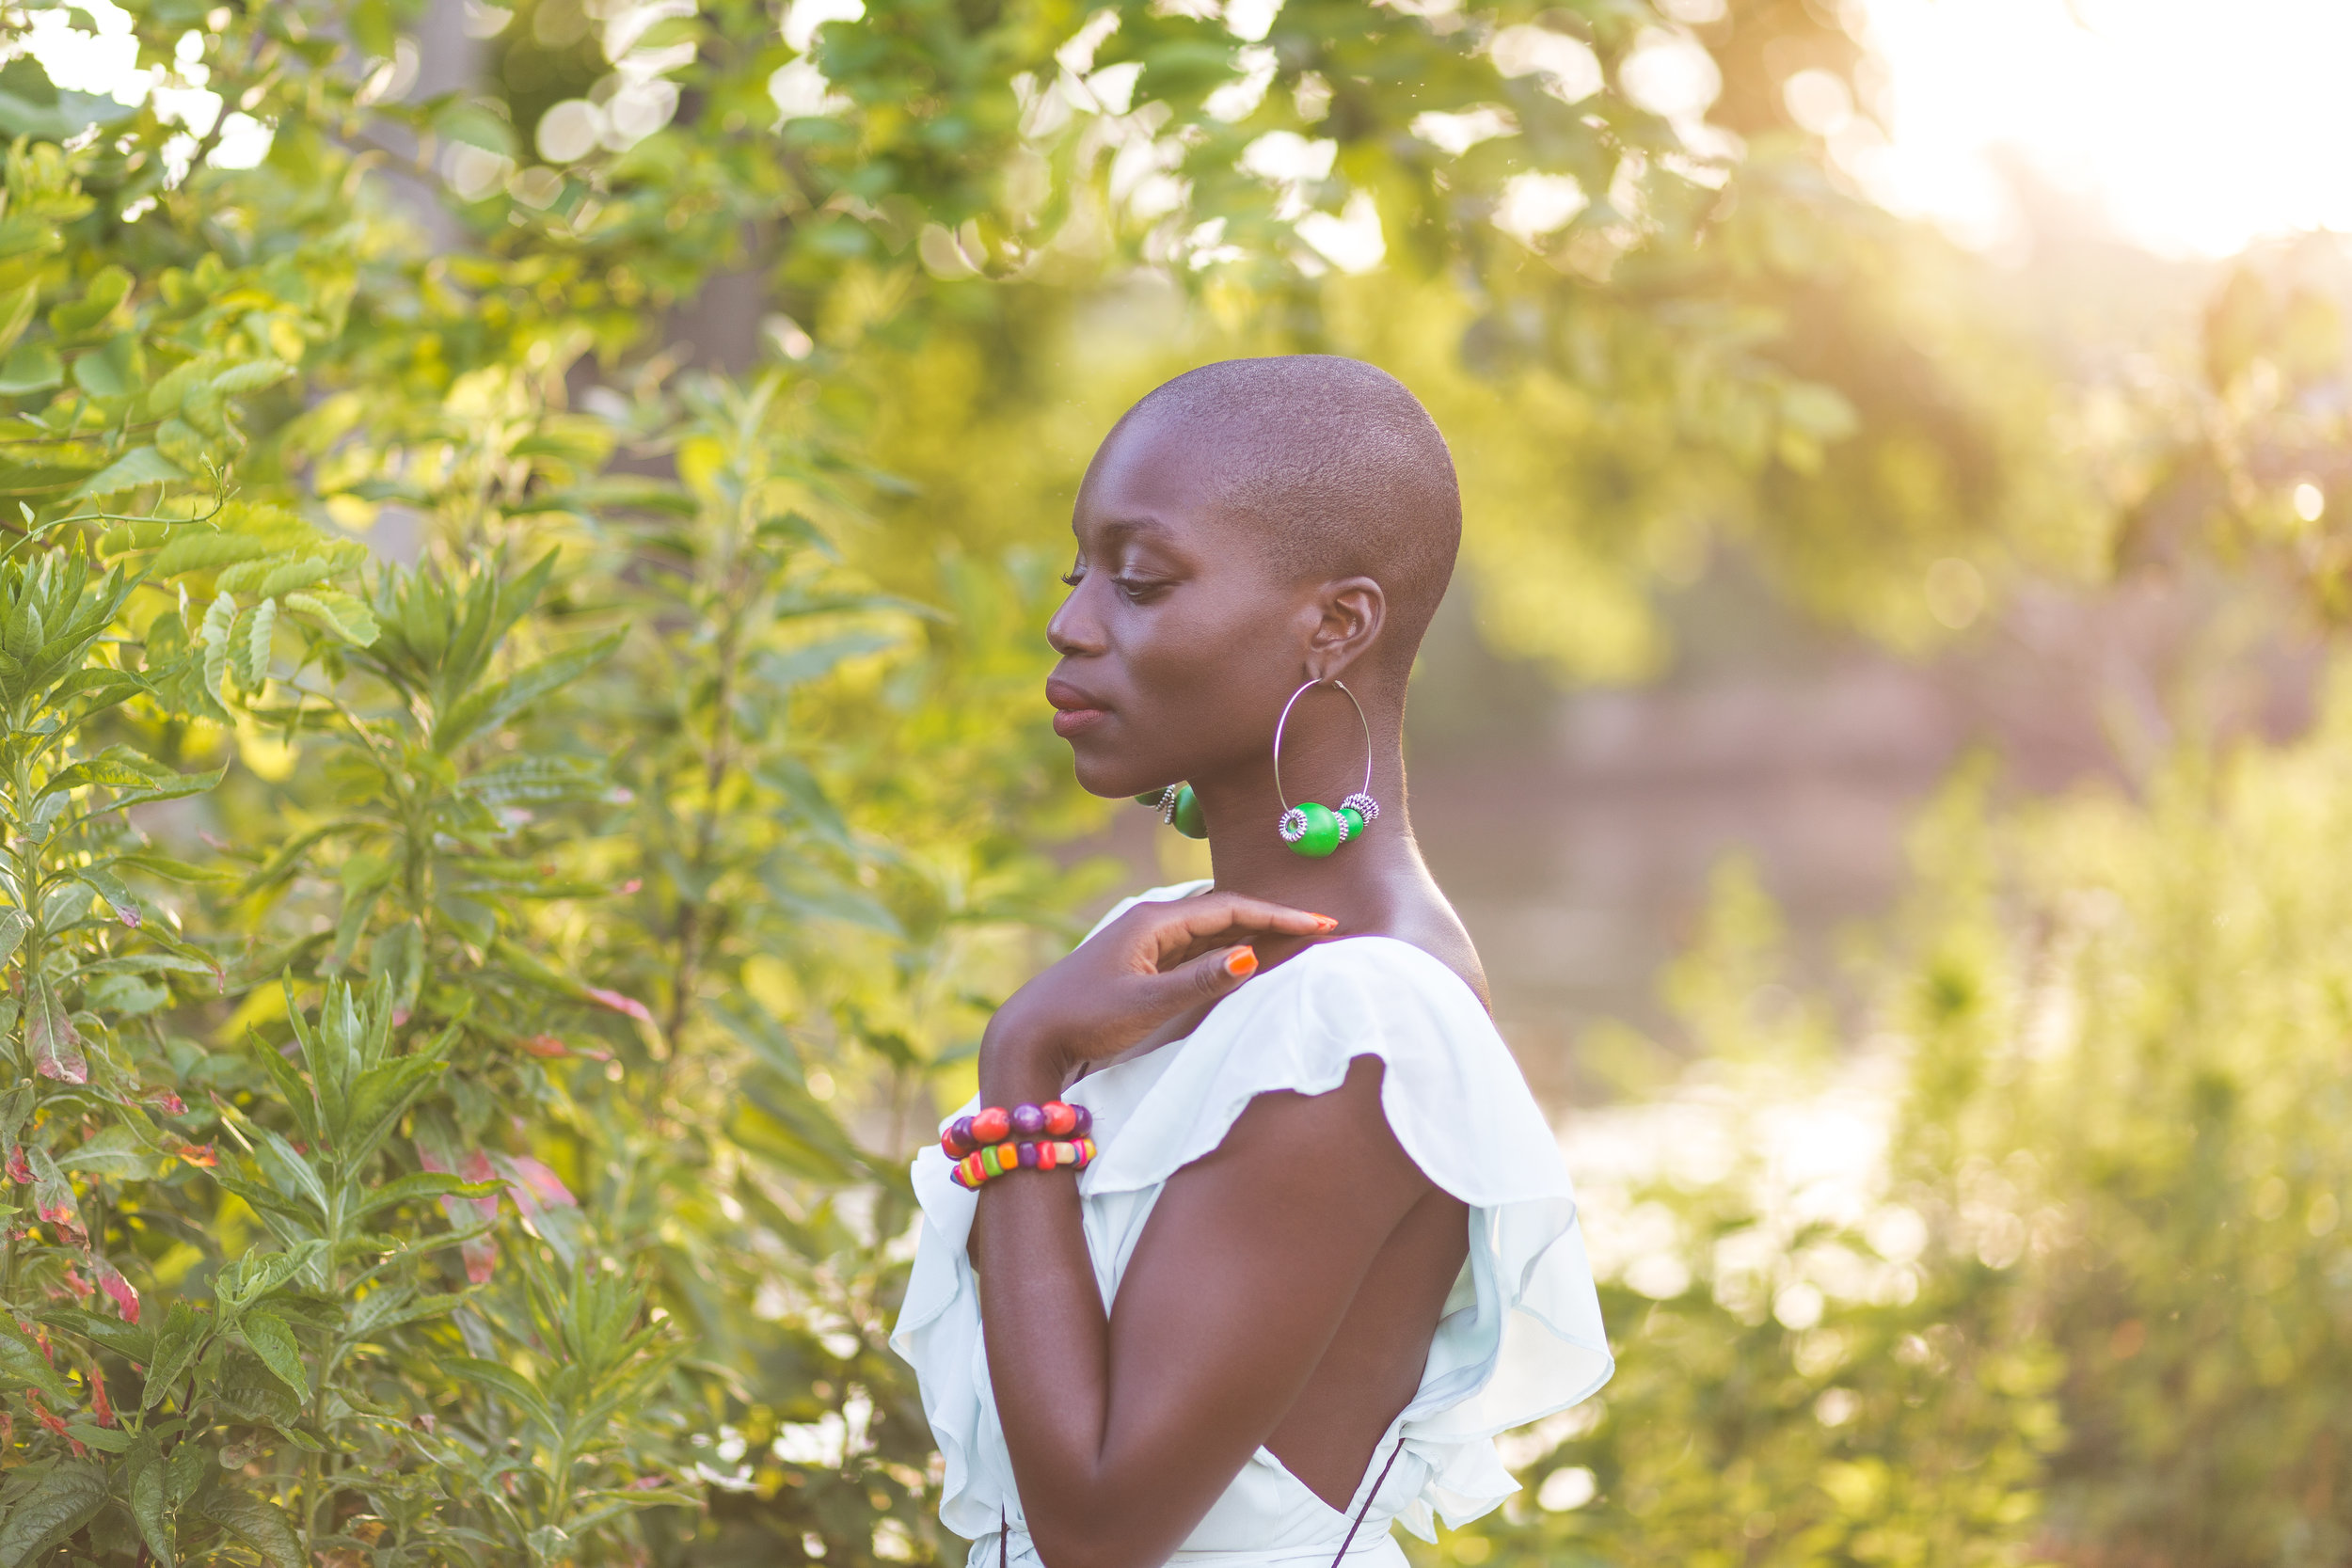 "Abena Bempah walked into the beer garden where we met for drinks and the entire place turned and looked at her. Her confidence and smile draws people in and leave you wanting more. She is on a journey to 'discover beauty within and without' and has been inspiring others to travel and redefine beauty.  In the past few years, Abena has intentionally crafted her life around travel. She has been to beautiful intriguing places around the world such as Aruba, Turkey, UAE, Thailand, Holland, Croatia, Morocco, Italy and Columbia; the majority of her trips were solo.  On her recent trip to Turkey, her mother tried to persuade her not to go due to security concerns, offering to reimburse the cost of the ticket. Abena declined and had the trip of a lifetime.    ""If you think adventure is dangerous, try routine. Its lethal""  - Paulo Coelho  Abena is a budget traveler, determining her next destination based on the cost of the flight and will fly out of Newark/NY if needs be.   Her  Instagram  has the most beautiful iPhone selfies incorporating the essence of the locations. It is worth stalking and it is also a reminder that you don't need a big camera to take compelling photos.   Below are some of the gorgeous photos of Abena I captured when we met."